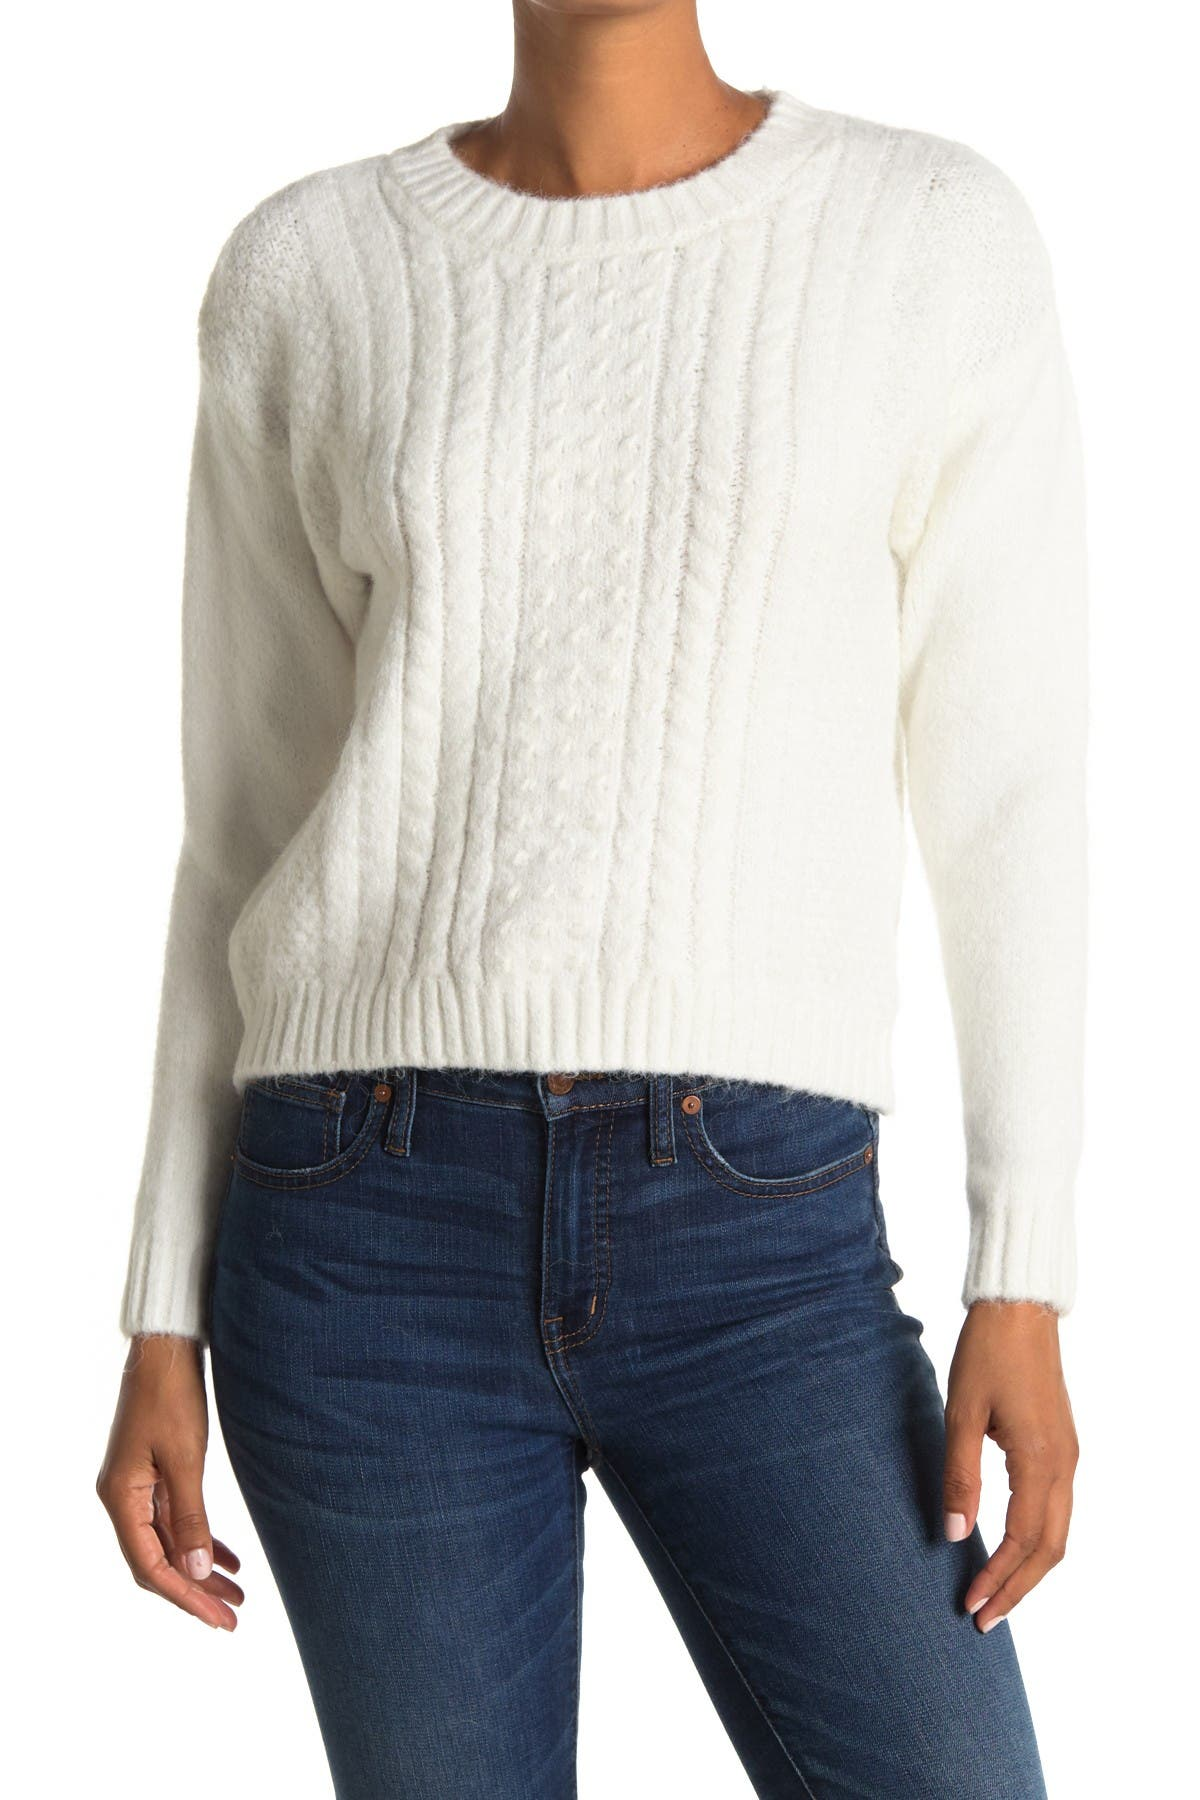 Image of Max Studio Cable Knit Sweater